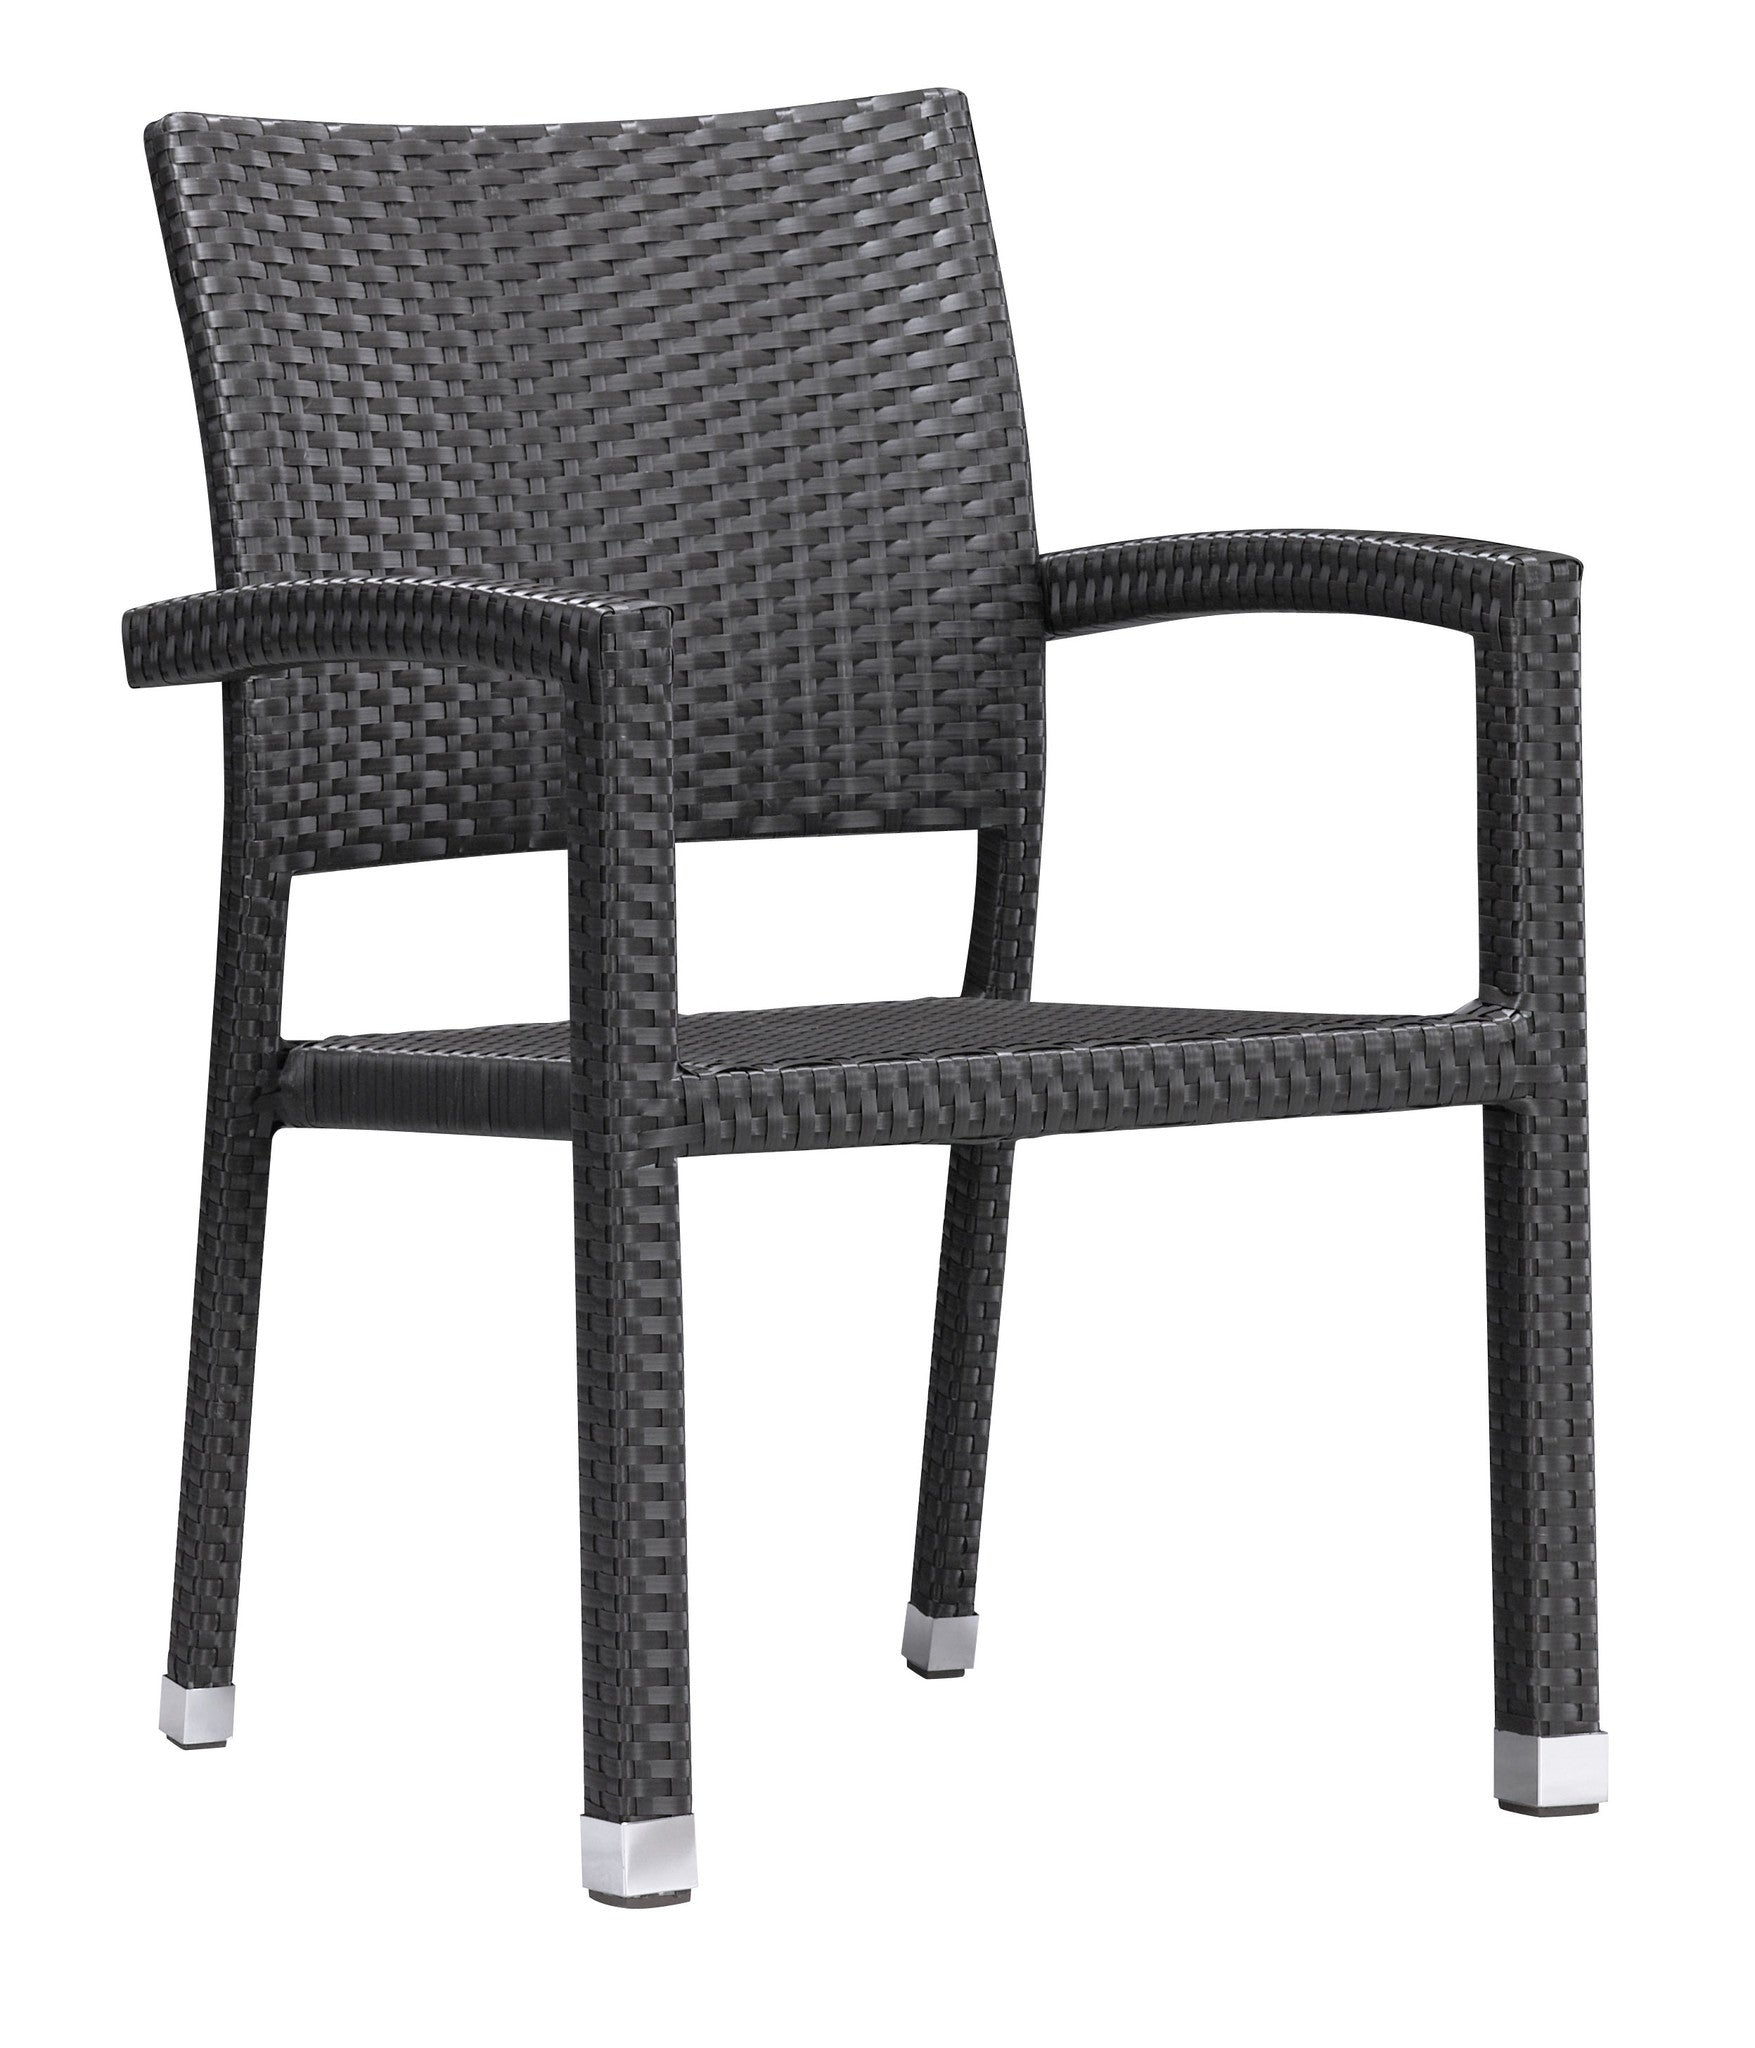 Boracay Patio Dining Chair in Espresso Synthetic Weave Set of 2